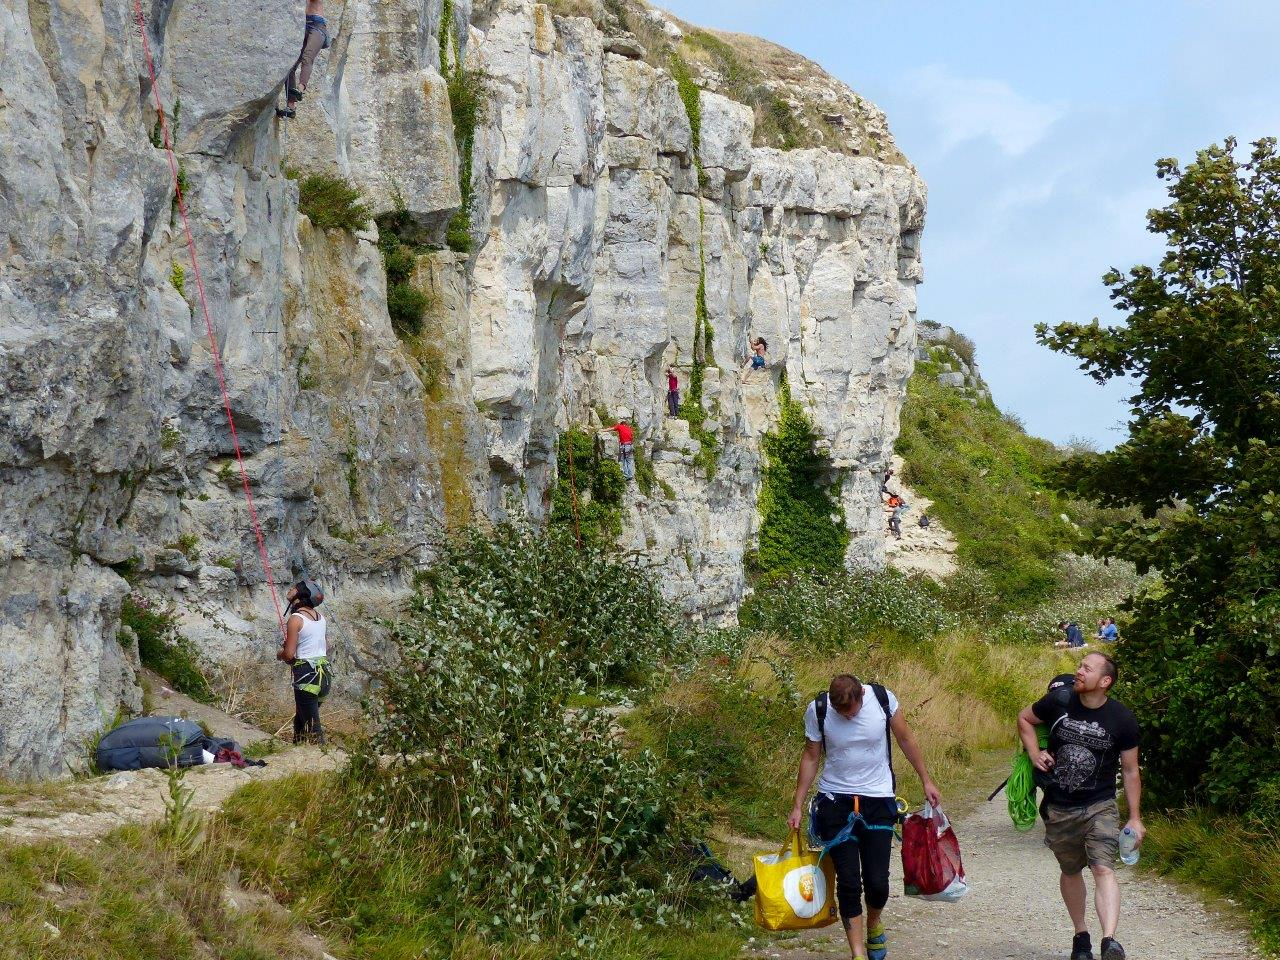 ARTICLE: 10 Things to Do at a Sport Crag